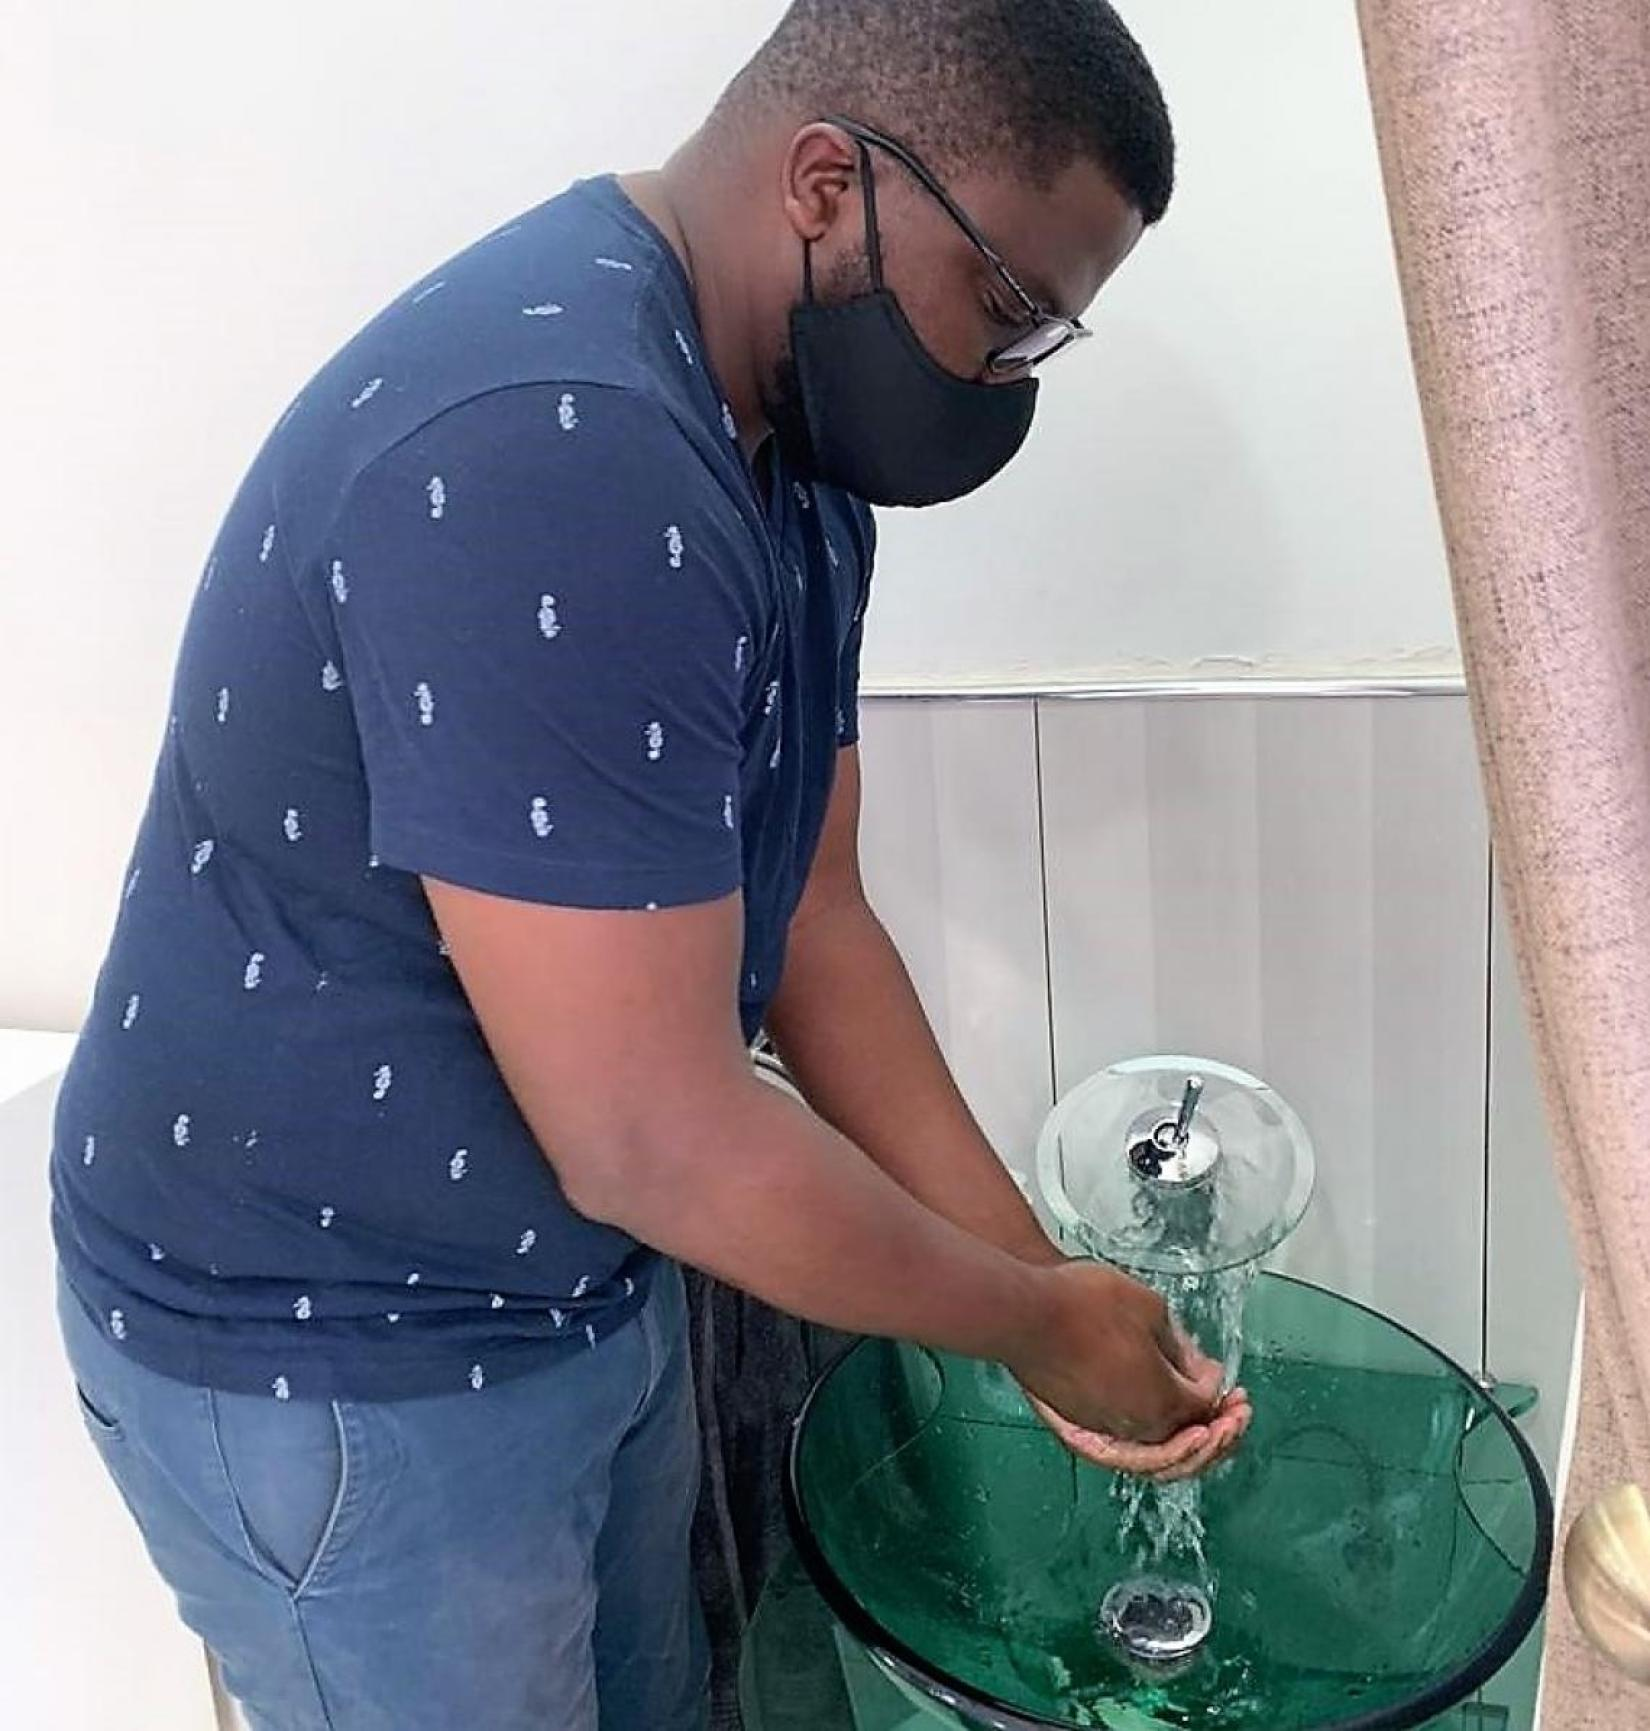 Rodrick handwashing at home, this is one of the preventative measures he has enhanced at home.